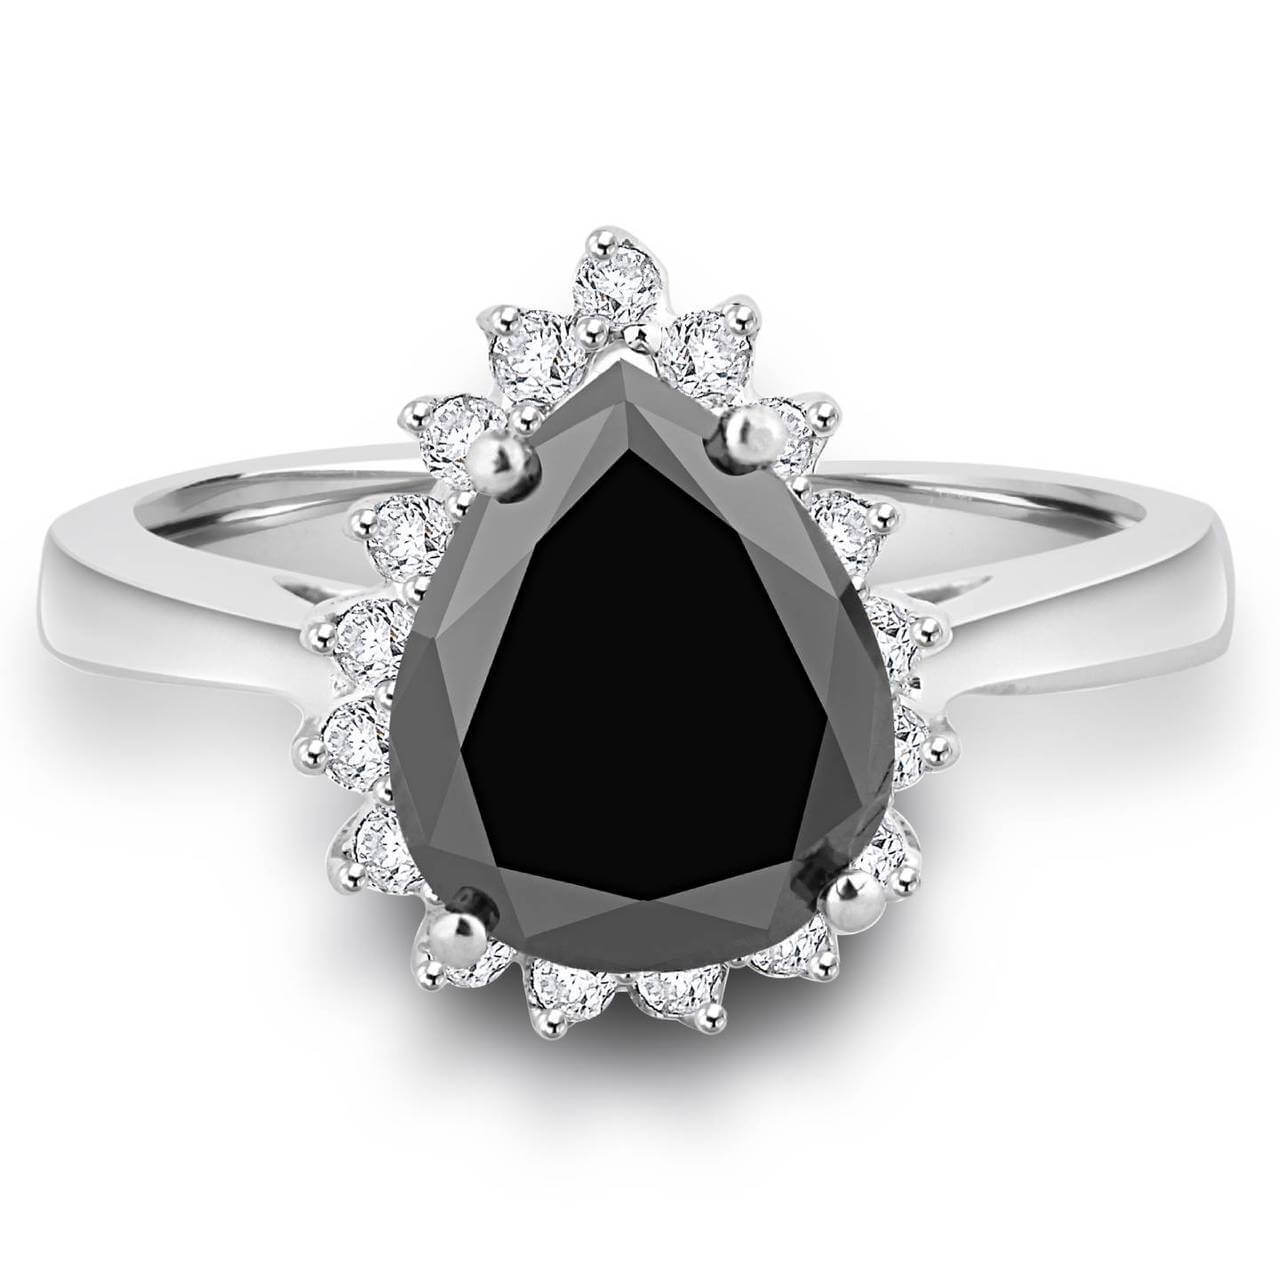 20 Unique Black Diamond Engagement Rings For Women Live